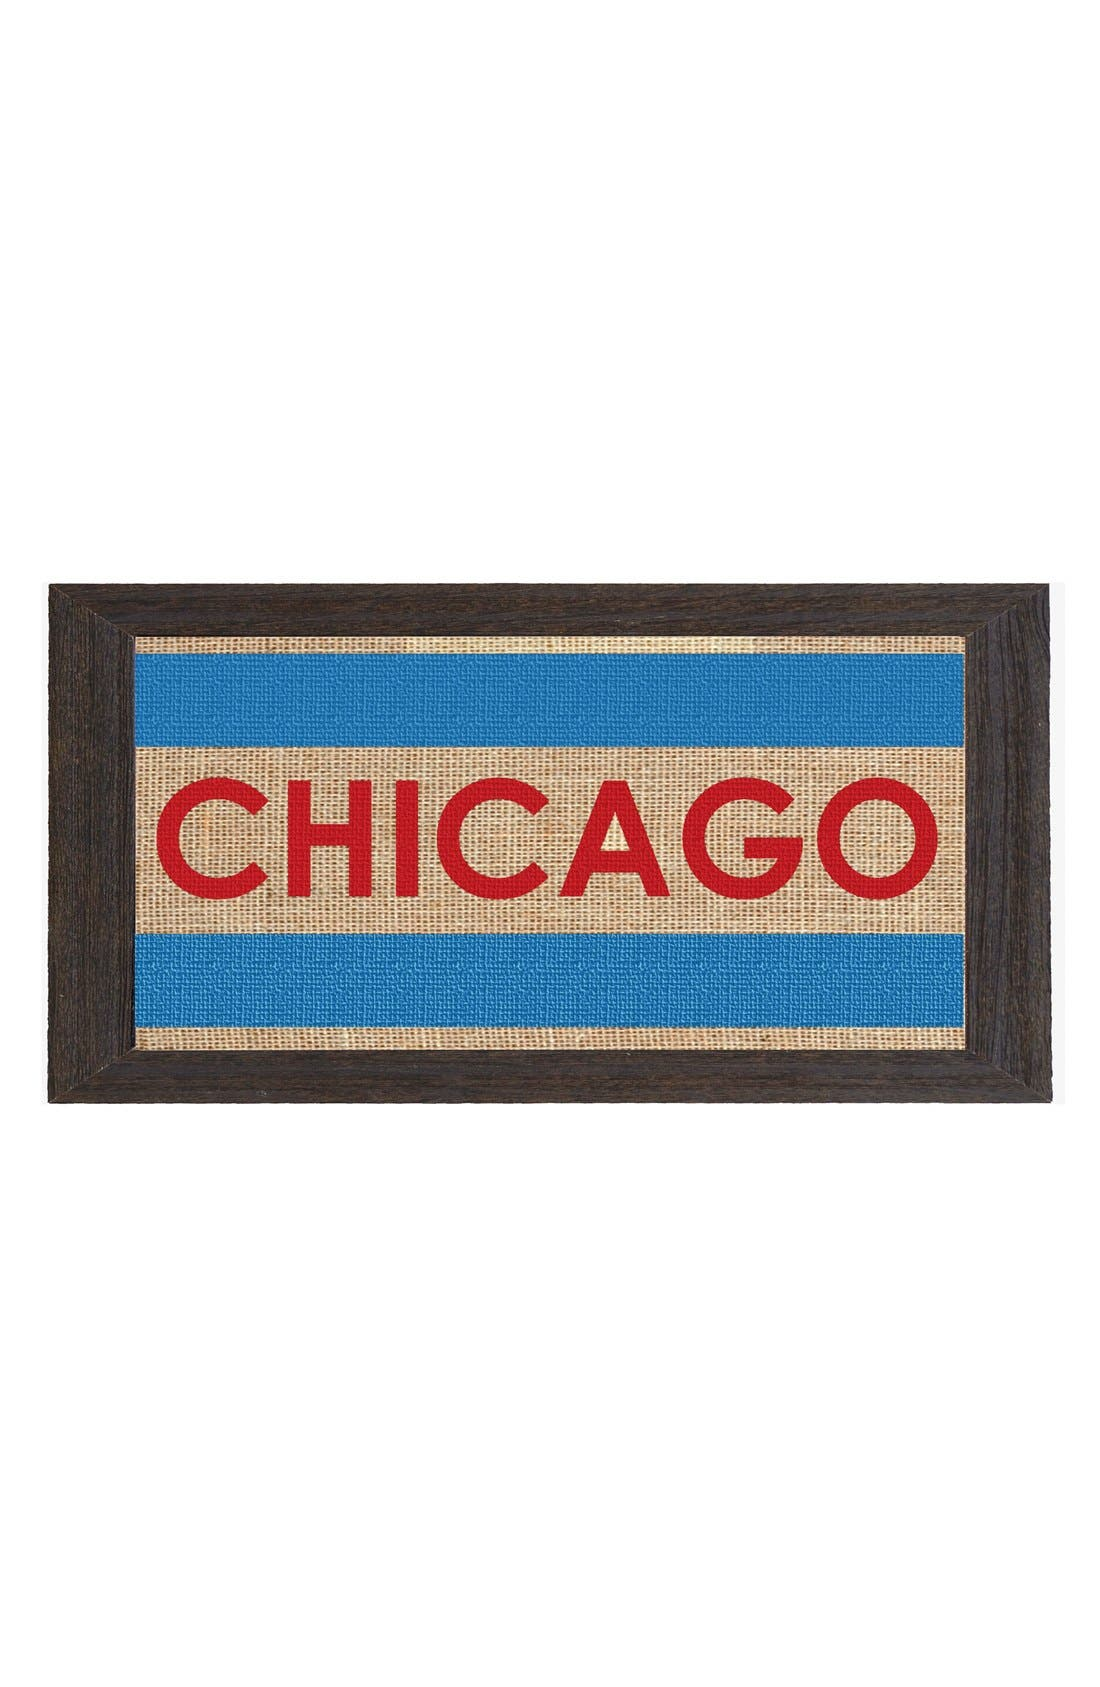 Alternate Image 1 Selected - Fiber and Water 'Chicago Flag' Burlap & Driftwood Wall Art